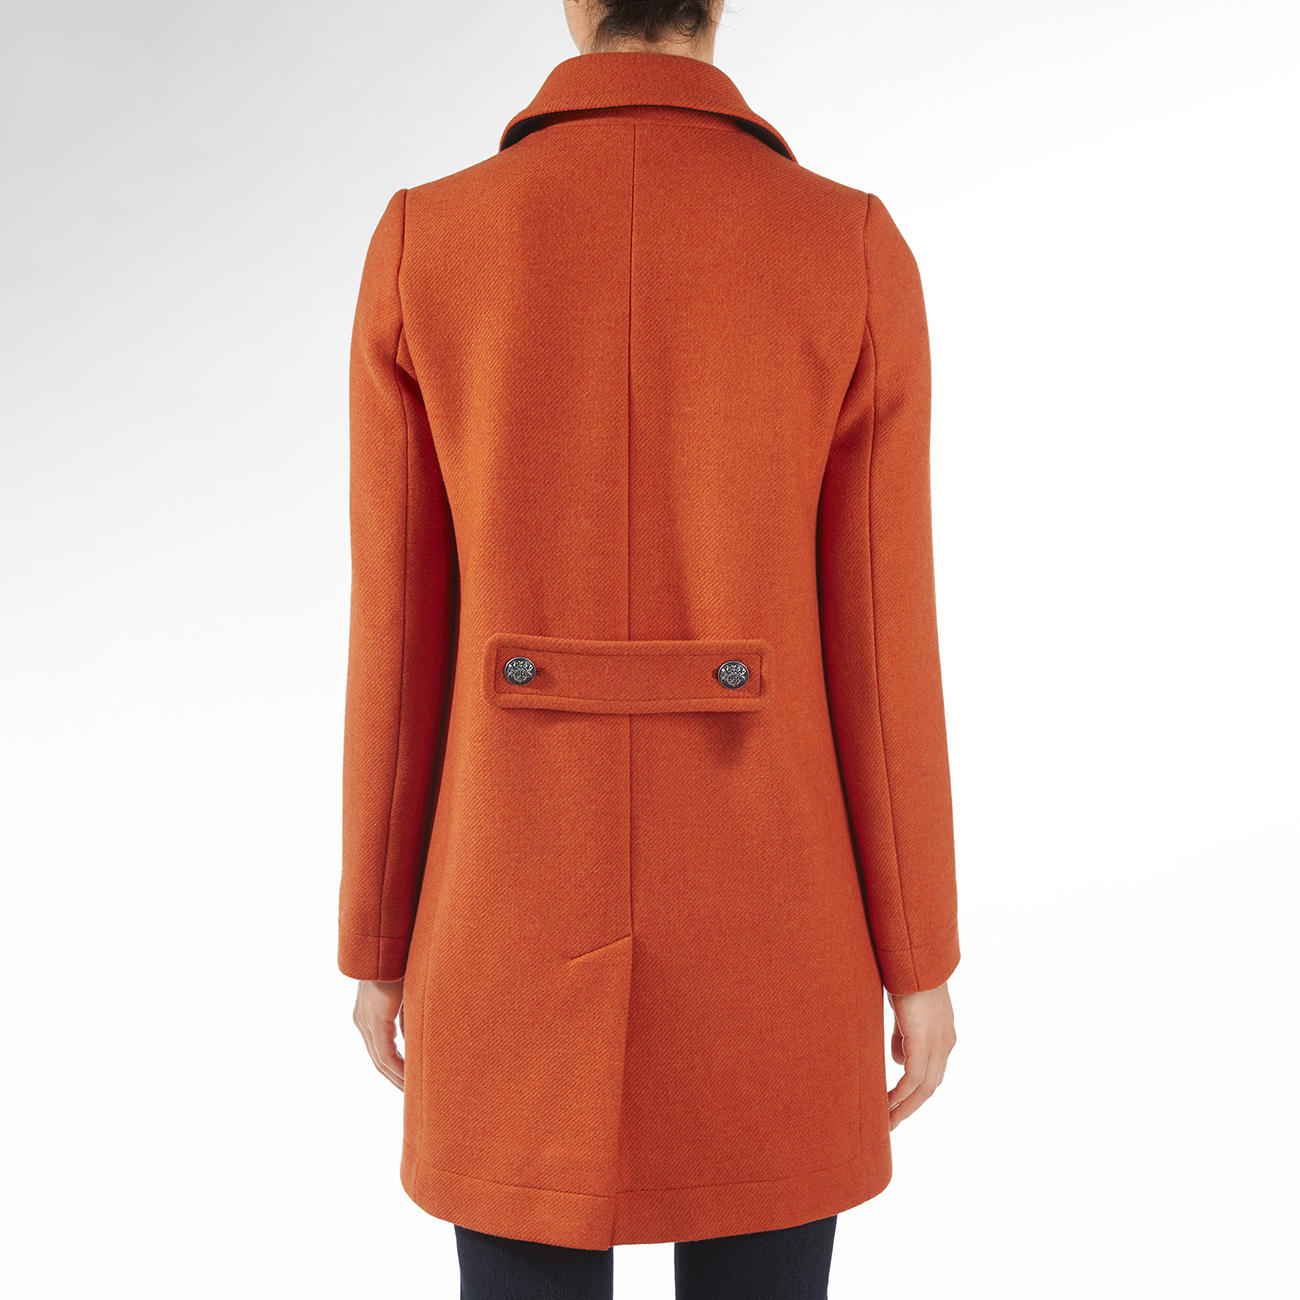 Saint James Caban Mantel   Trend Wollmantel. Modefarbe Orange. Und Doch  Potential Zum Klassiker.